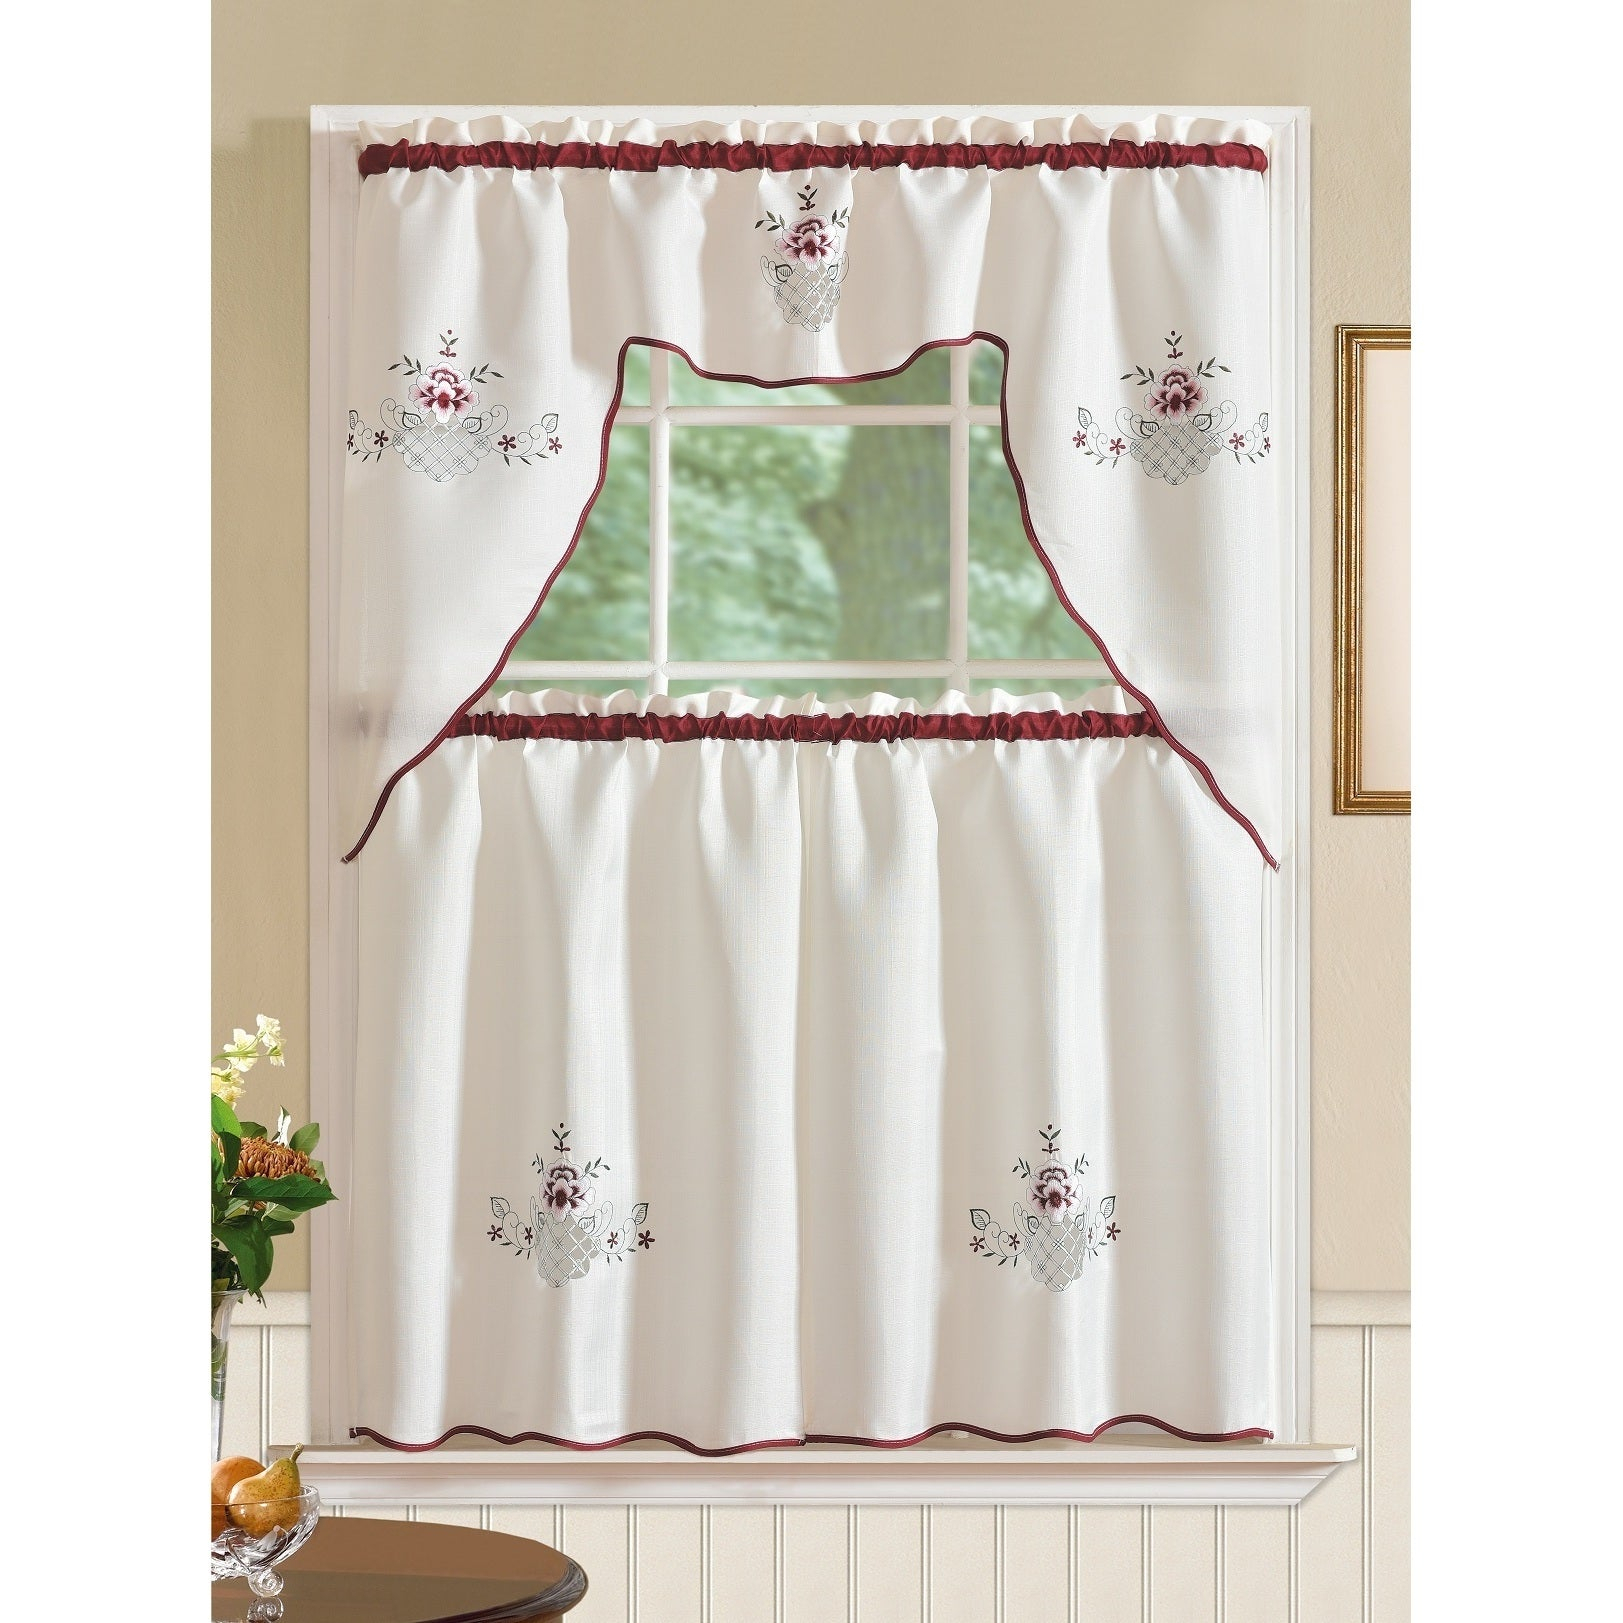 Rt Designers Collection Imperial Flower Jacquard Tier And Valance Kitchen Curtain Set Intended For Grace Cinnabar 5 Piece Curtain Tier And Swag Sets (View 8 of 20)